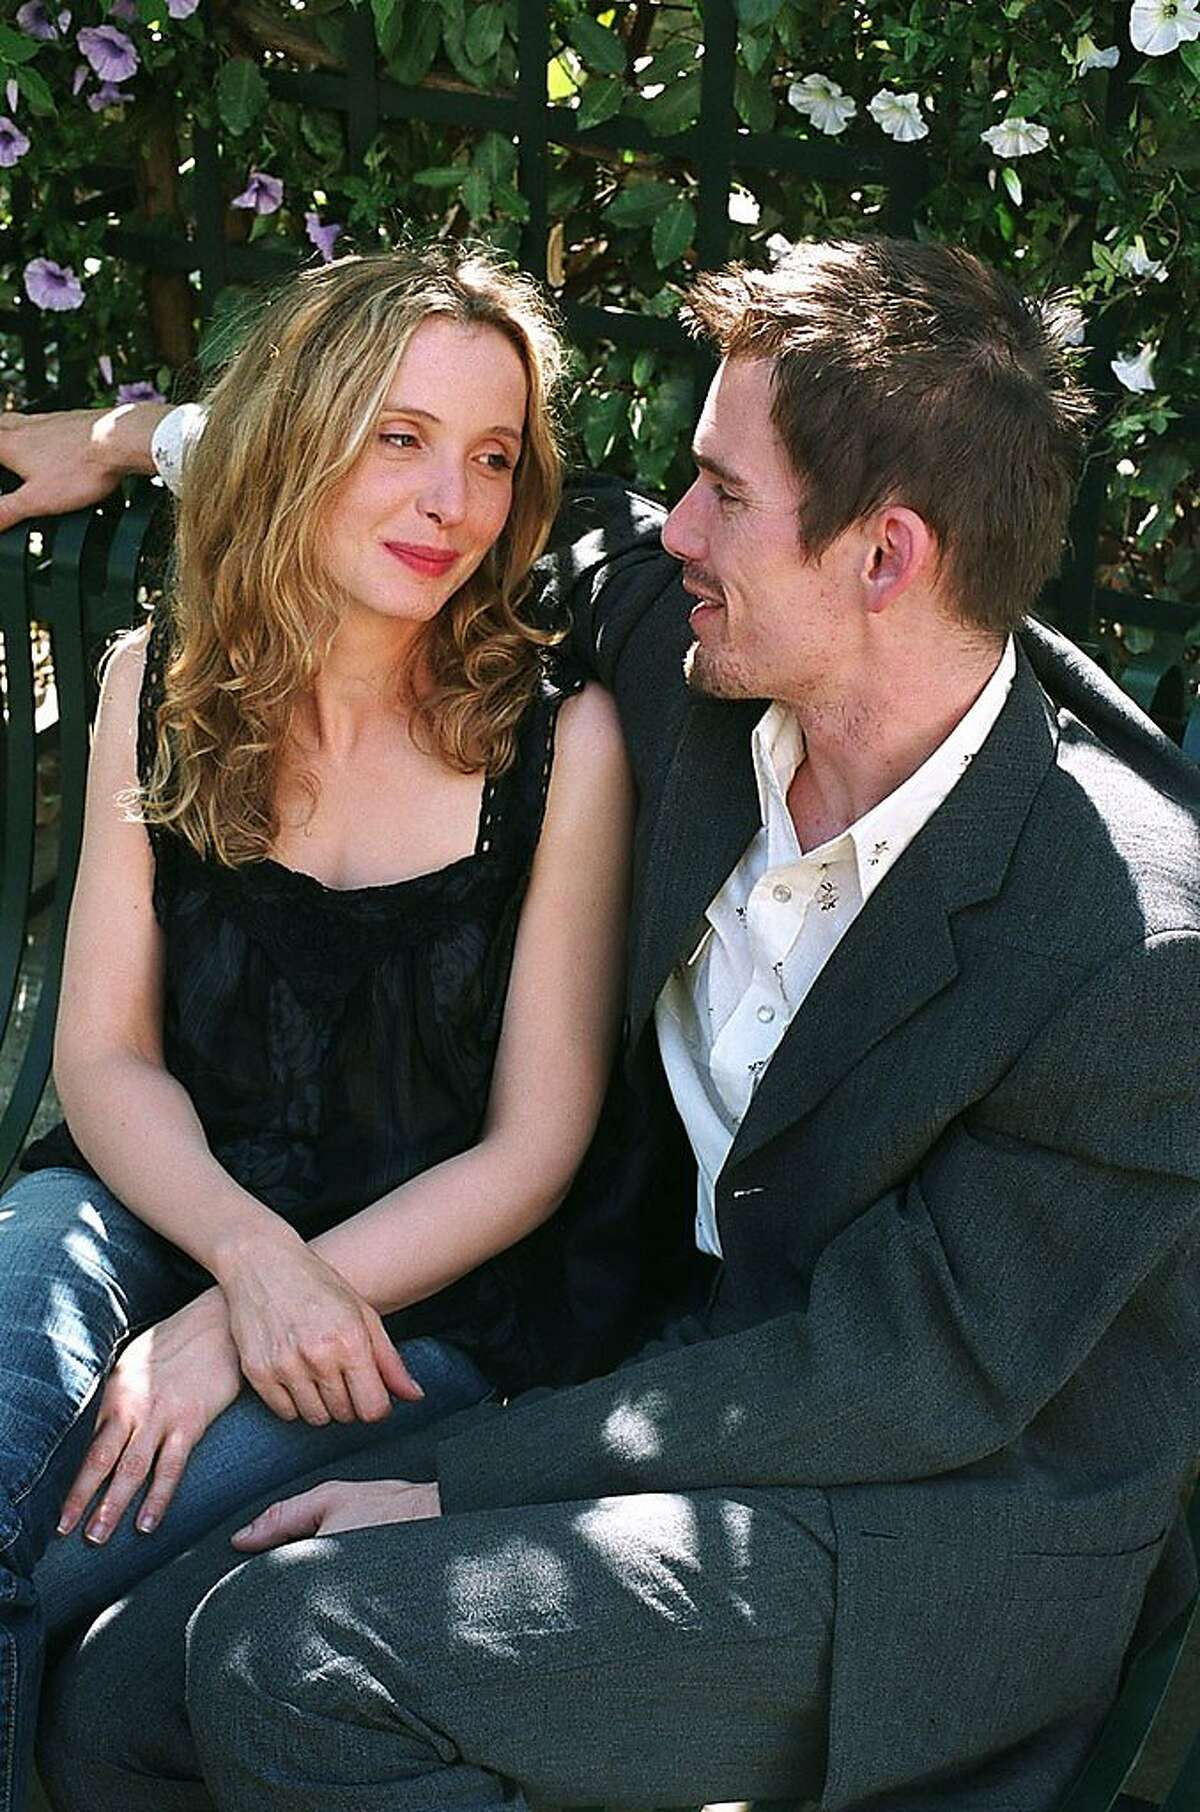 American author Jesse (Ethan Hawke) meets up with Celine (Julie Delpy) in Paris, reuniting nine years after they first met while traveling through Europe in